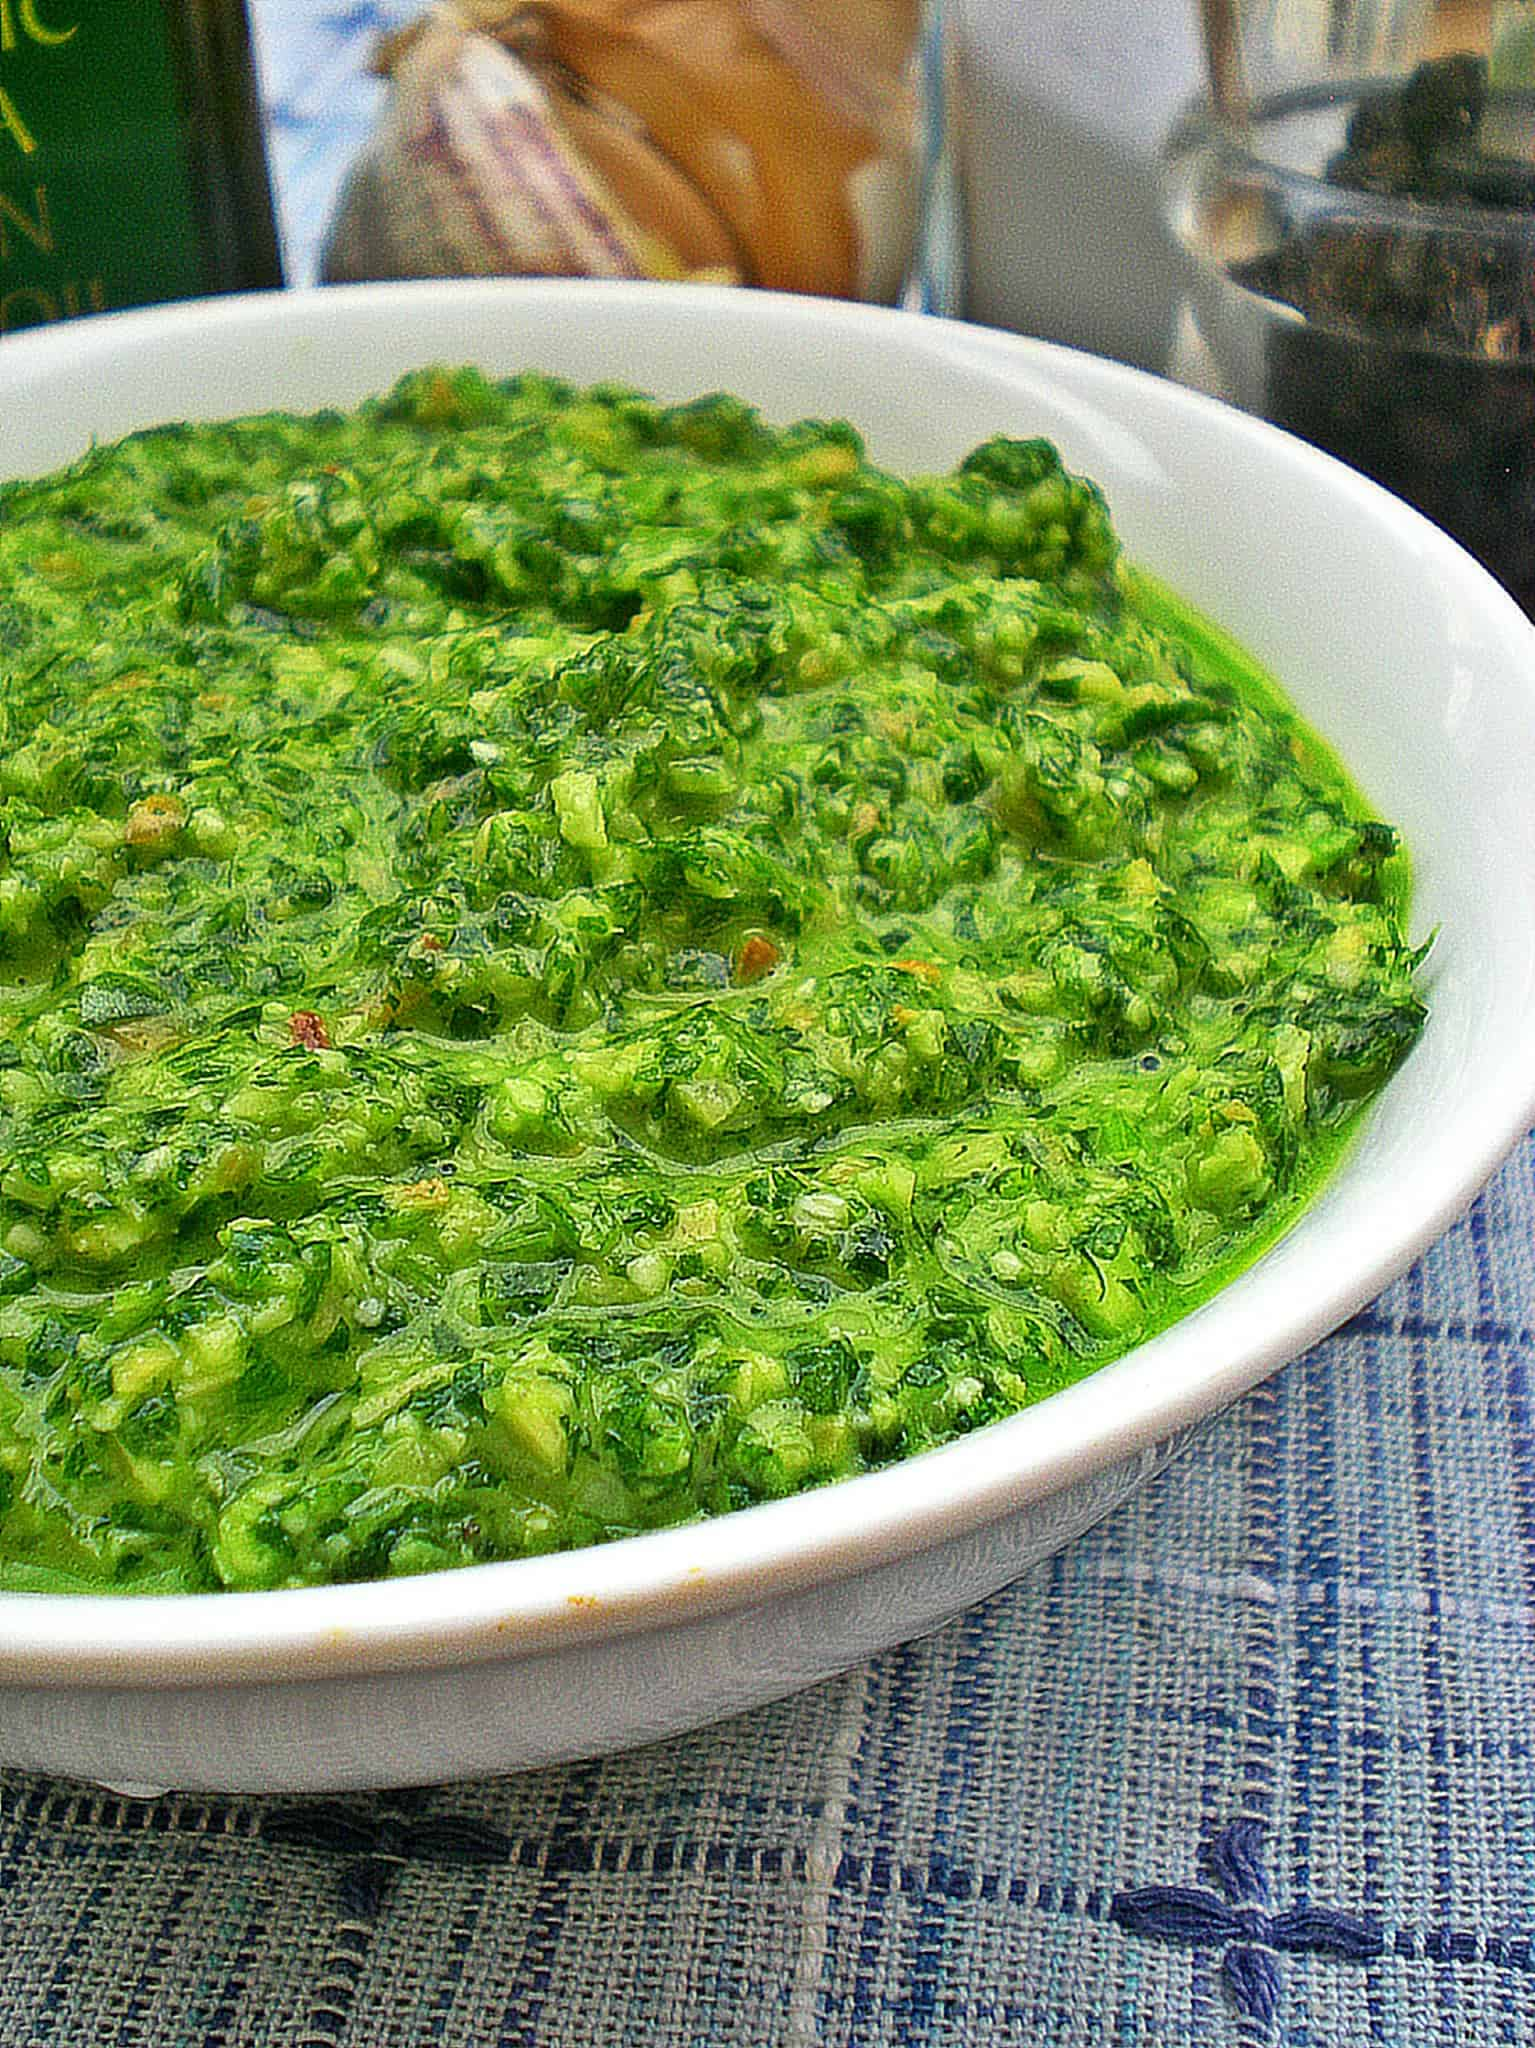 Eat More Vege – Parsley and Rocket Pesto